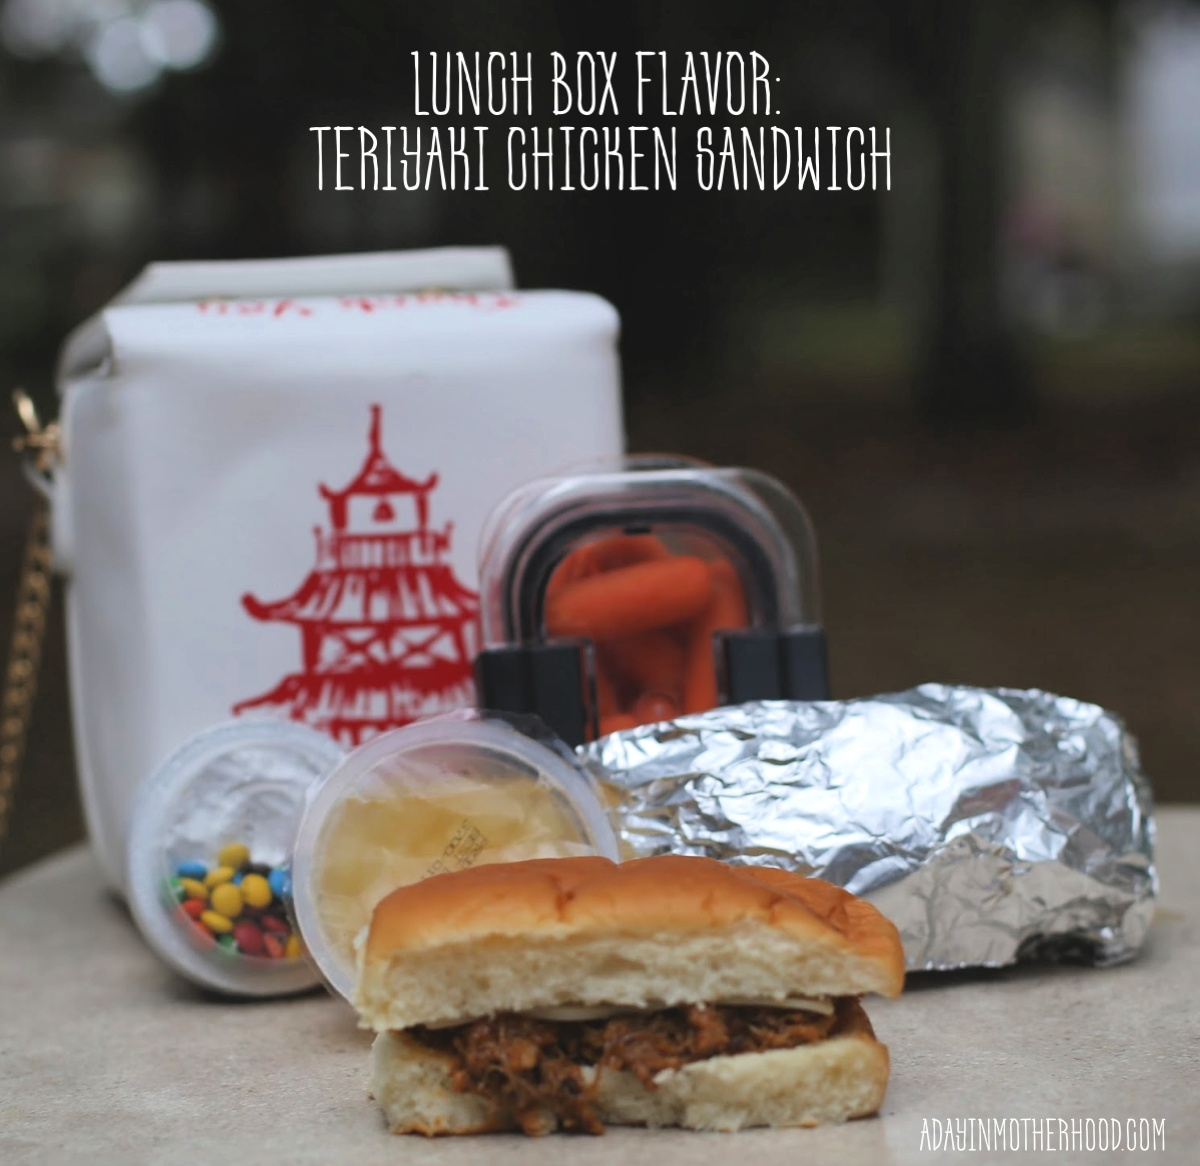 Teriyaki Chicken Sandwiches are a Must for Lunch Boxes Everywhere with yum!